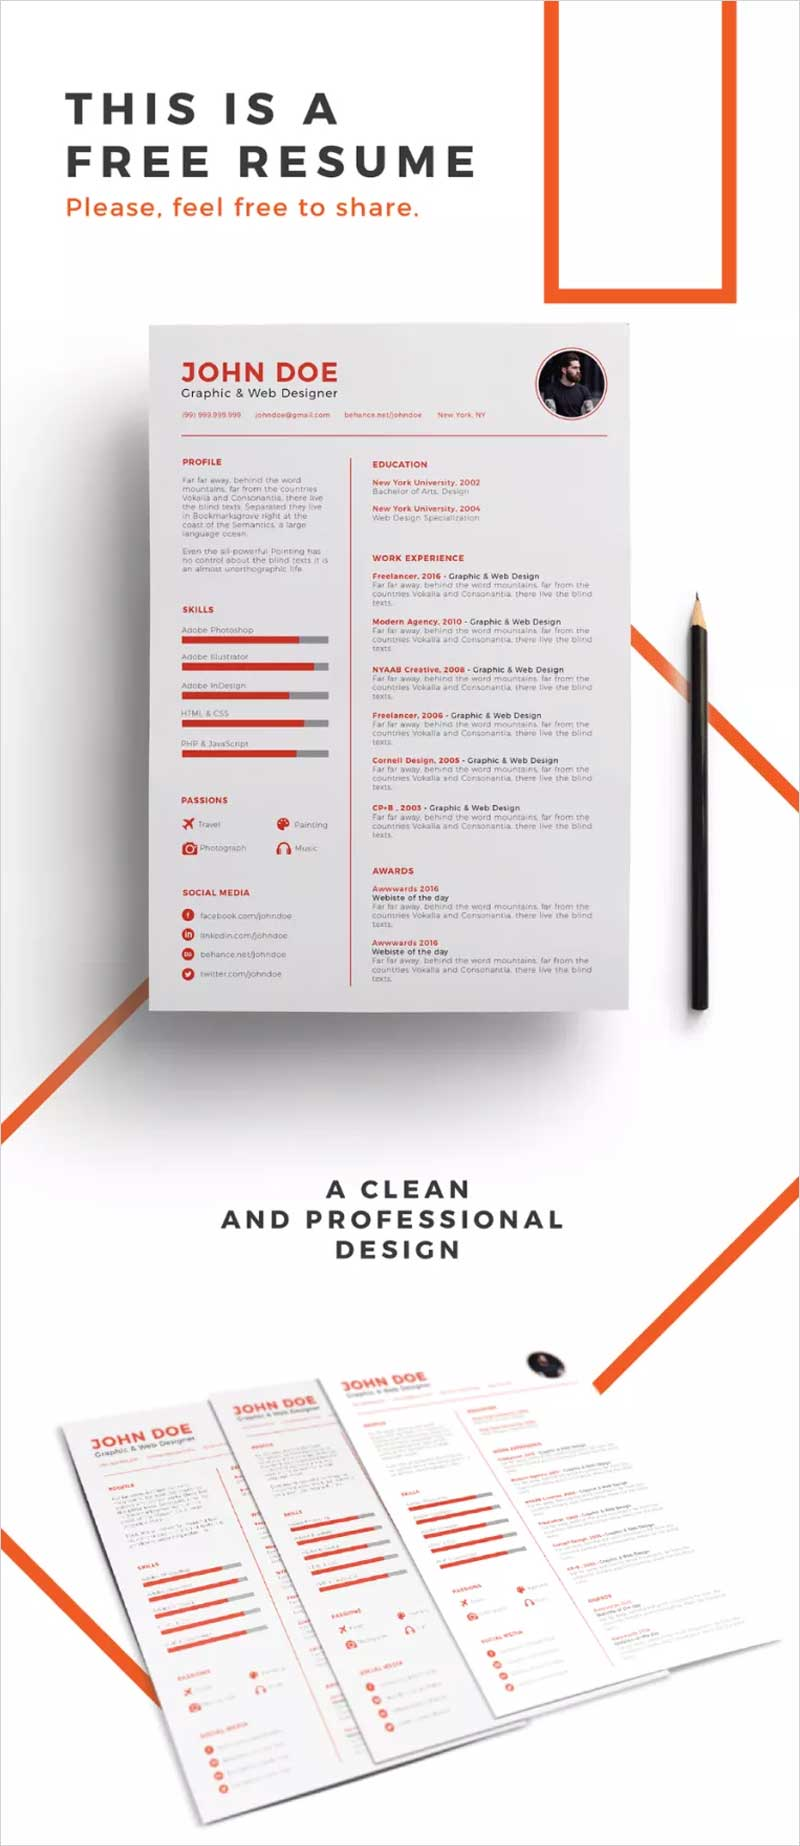 Clean-Design-Free-Resume-Template